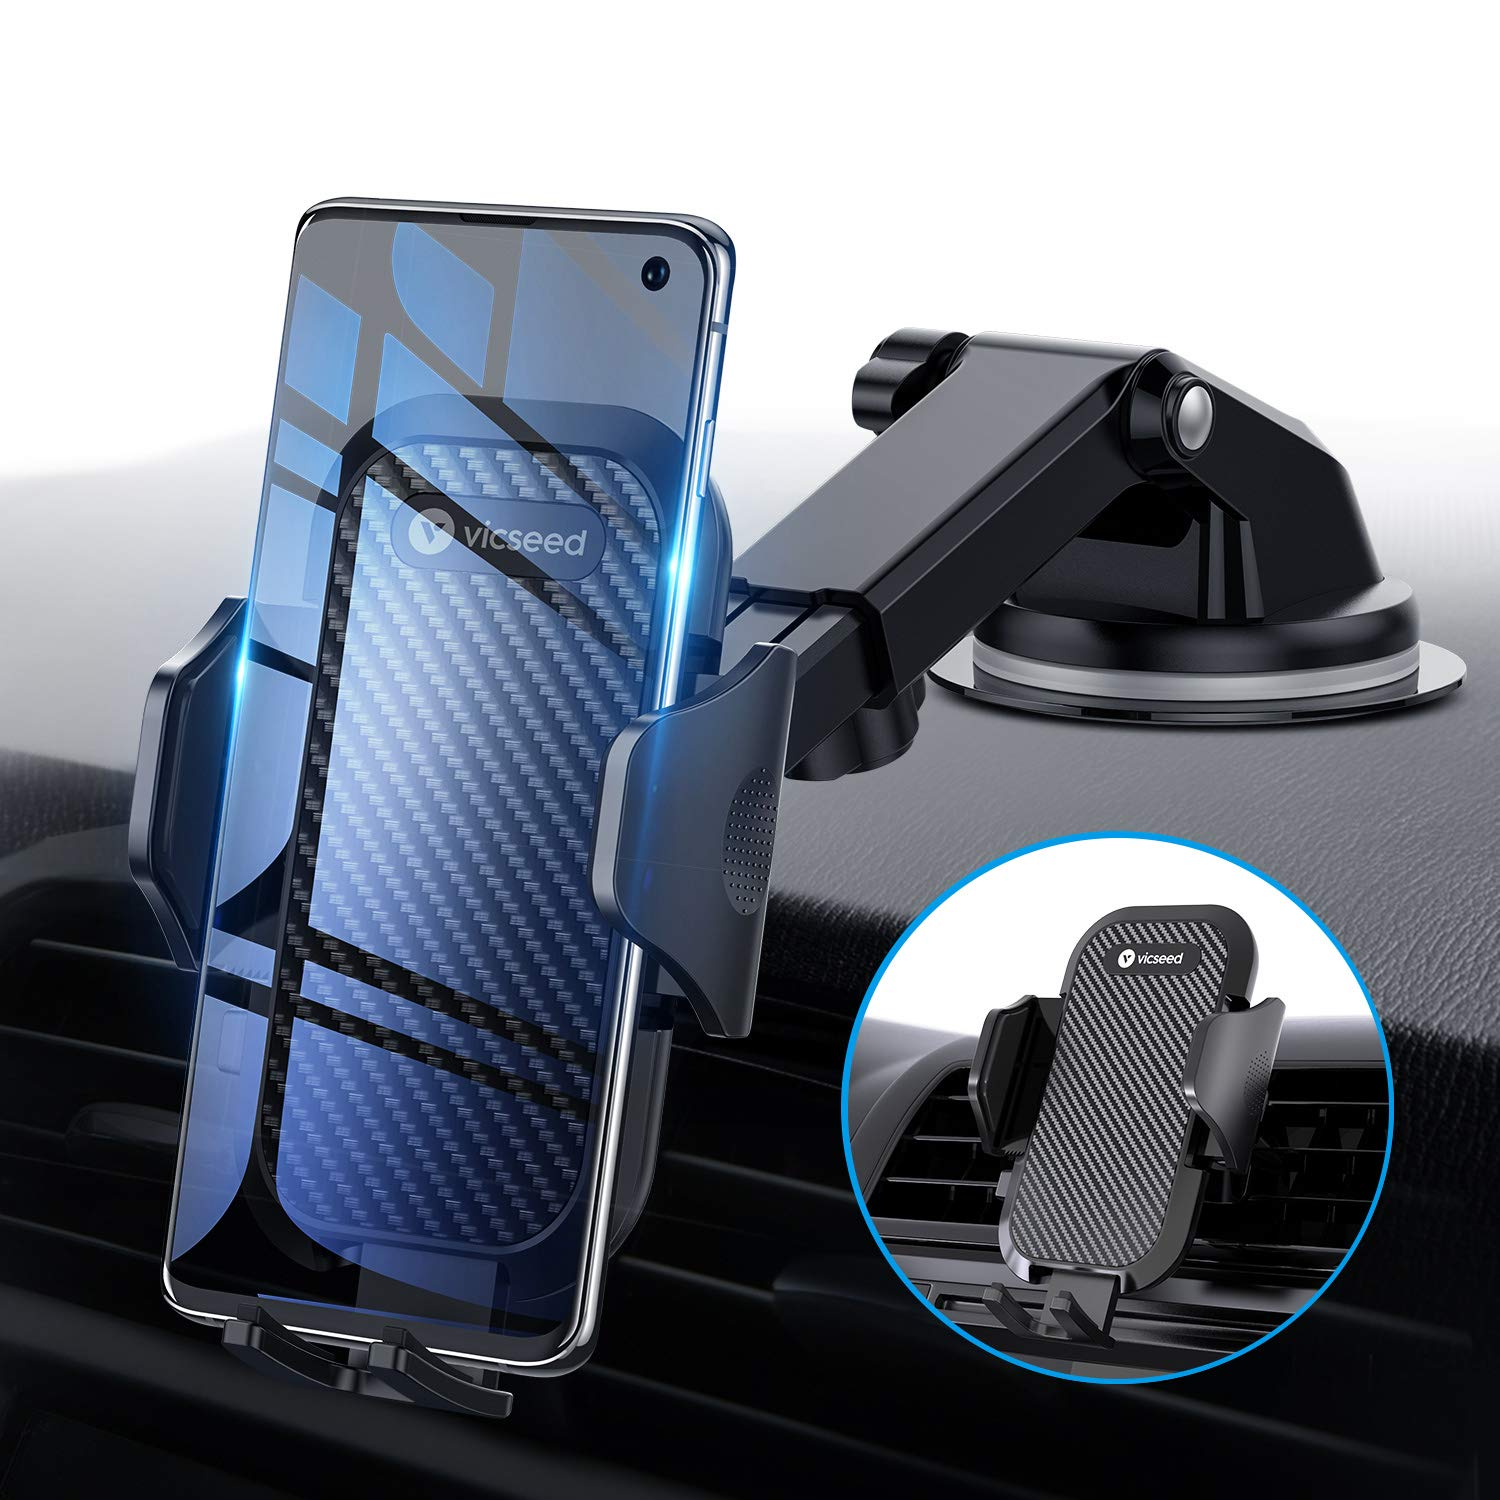 Universal Car Phone Mount VICSEED Car Phone Holder for Car Dashboard Windshield Air Vent Long Arm Strong Suction Cell Phone Car Mount Compatible with iPhone 11 Pro X XS Max XR Galaxy Note10 S10 by VICSEED